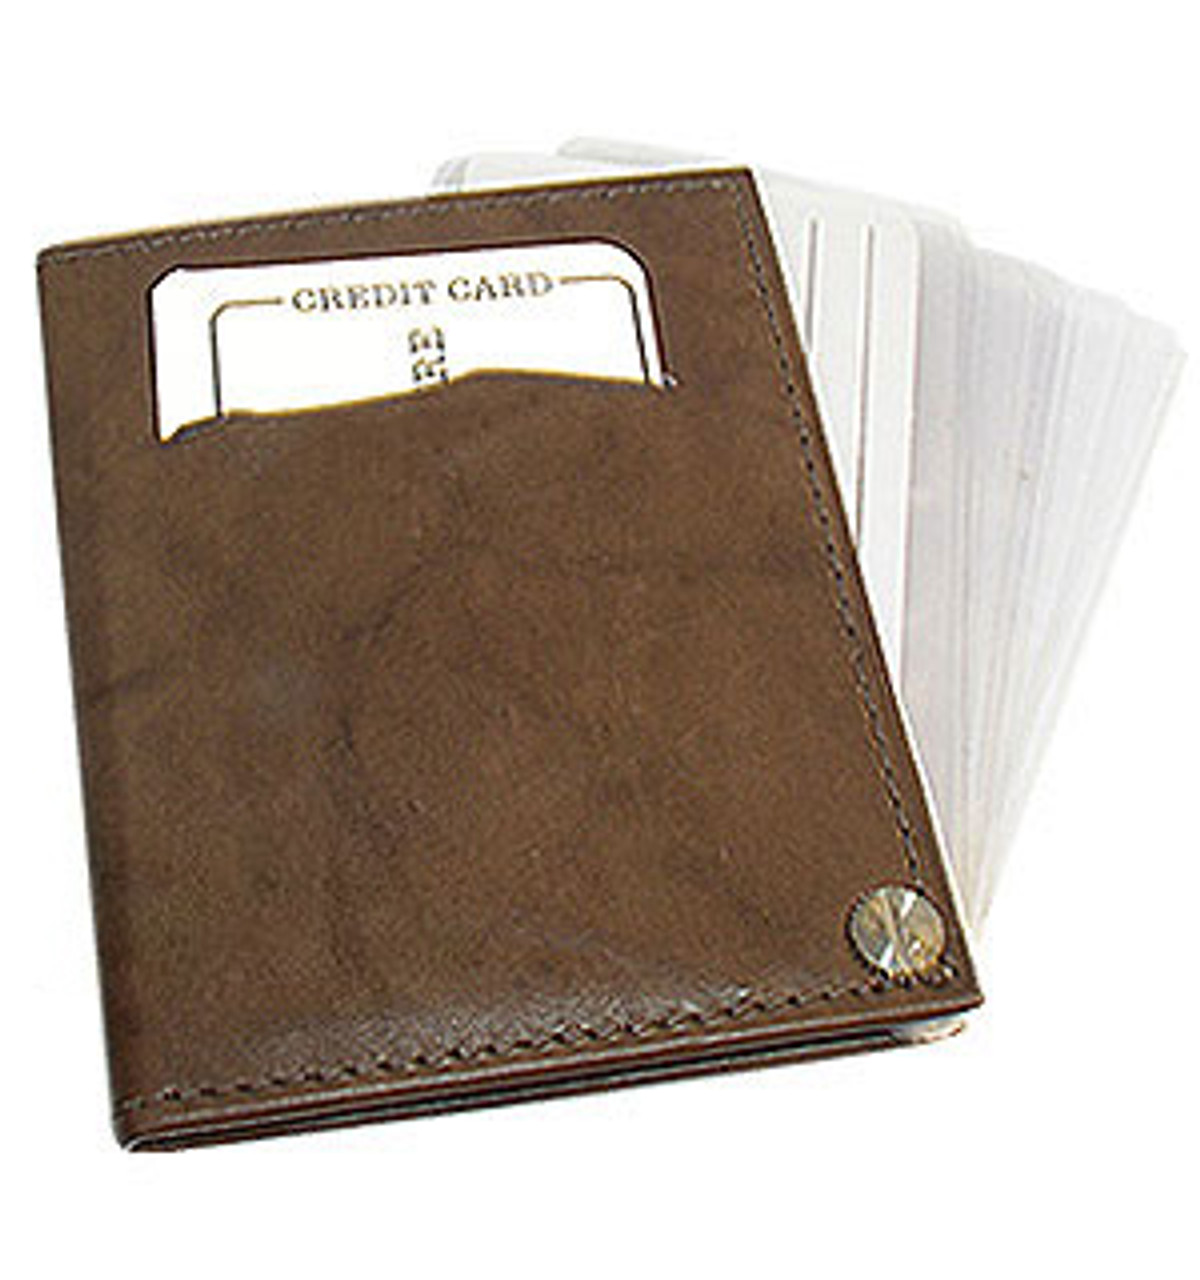 Leather Cowhide Credit Card Holder Wallet Available in Different Colors #MW571MT